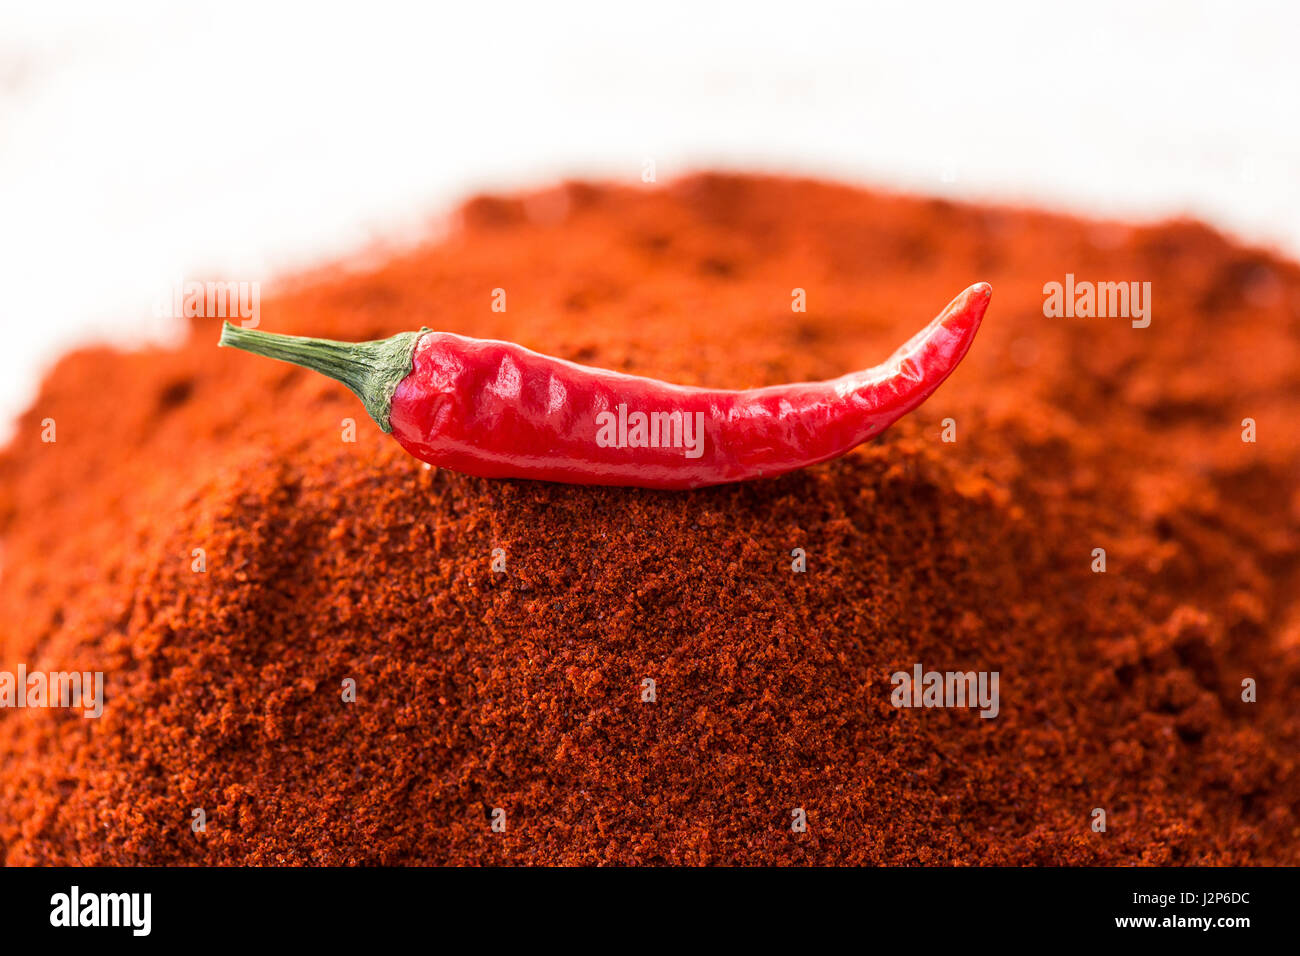 chili red hot pepper, concept of popular spice - delicious juicy pod of chili red pepper is isolated on top of red - Stock Image